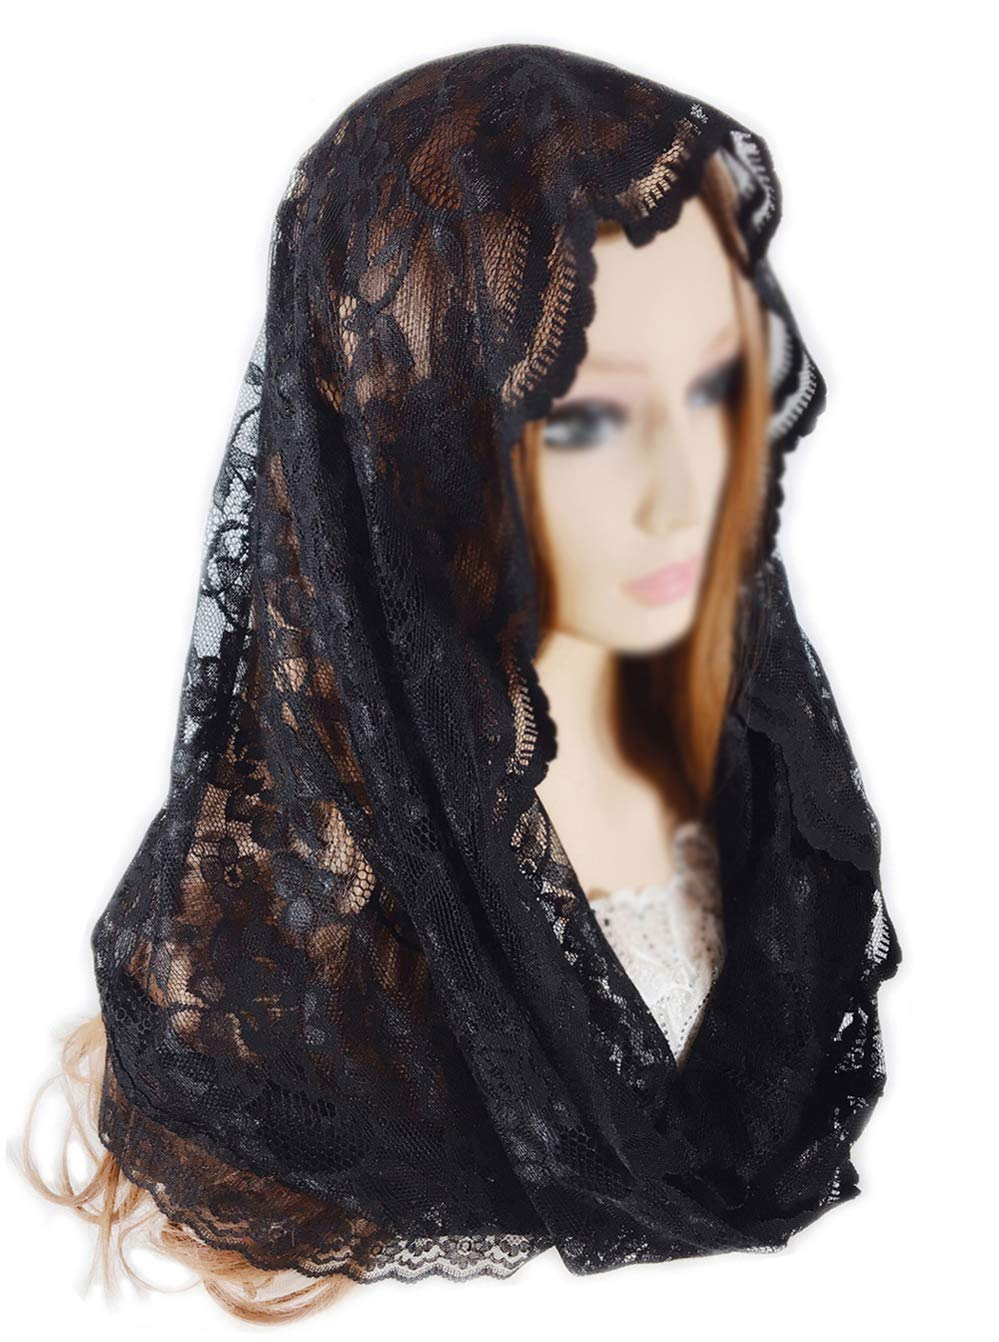 Pamor Infinity Floral Veils Scarf Catholic Church Veil Head Covering Latin Mass Lace Mantilla with Free Hairclip (black) by PAMOR (Image #1)